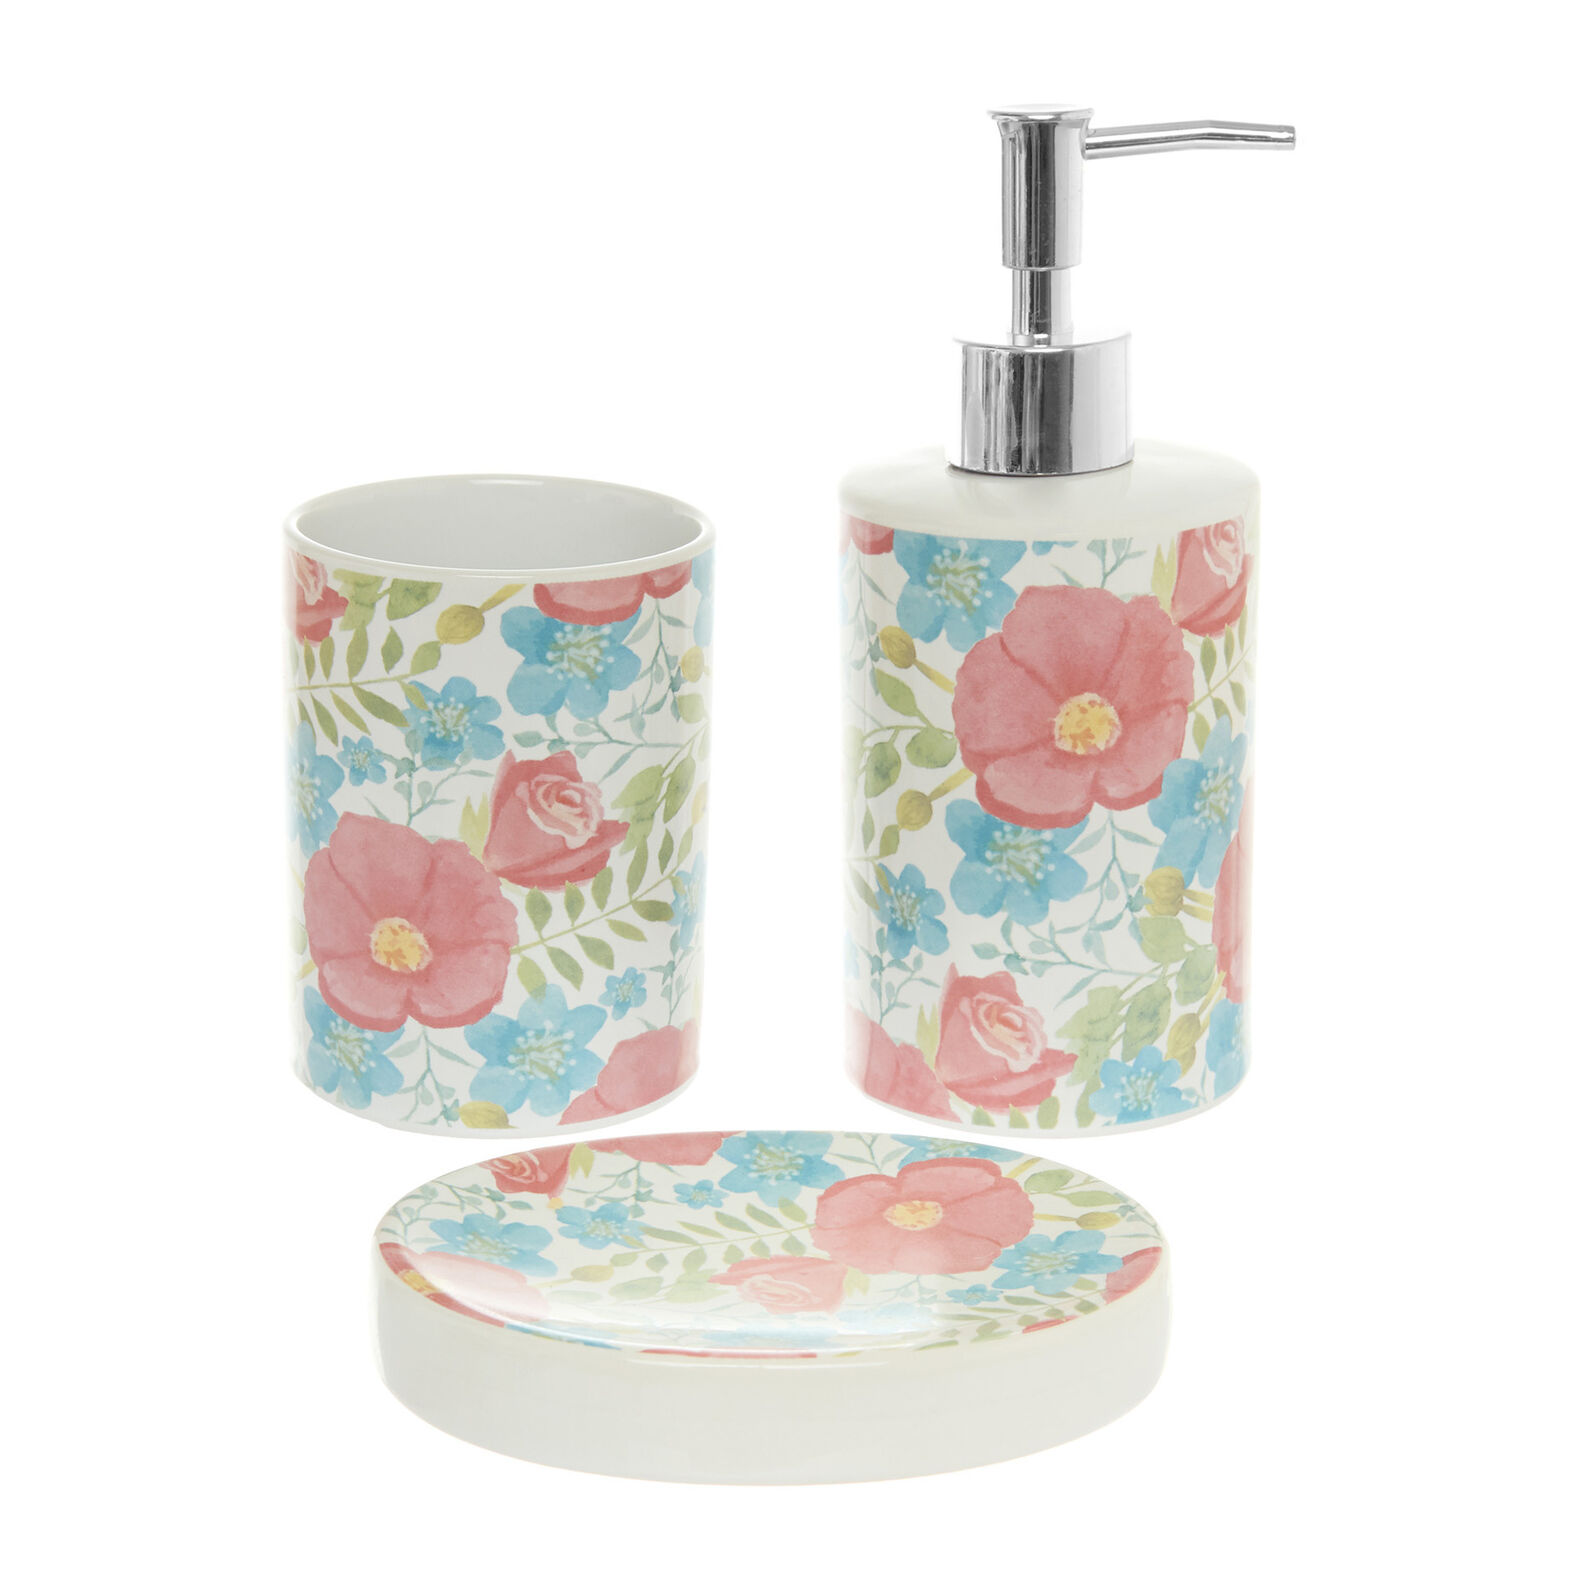 Set of 3 ceramic bathroom accessories with flowers motif